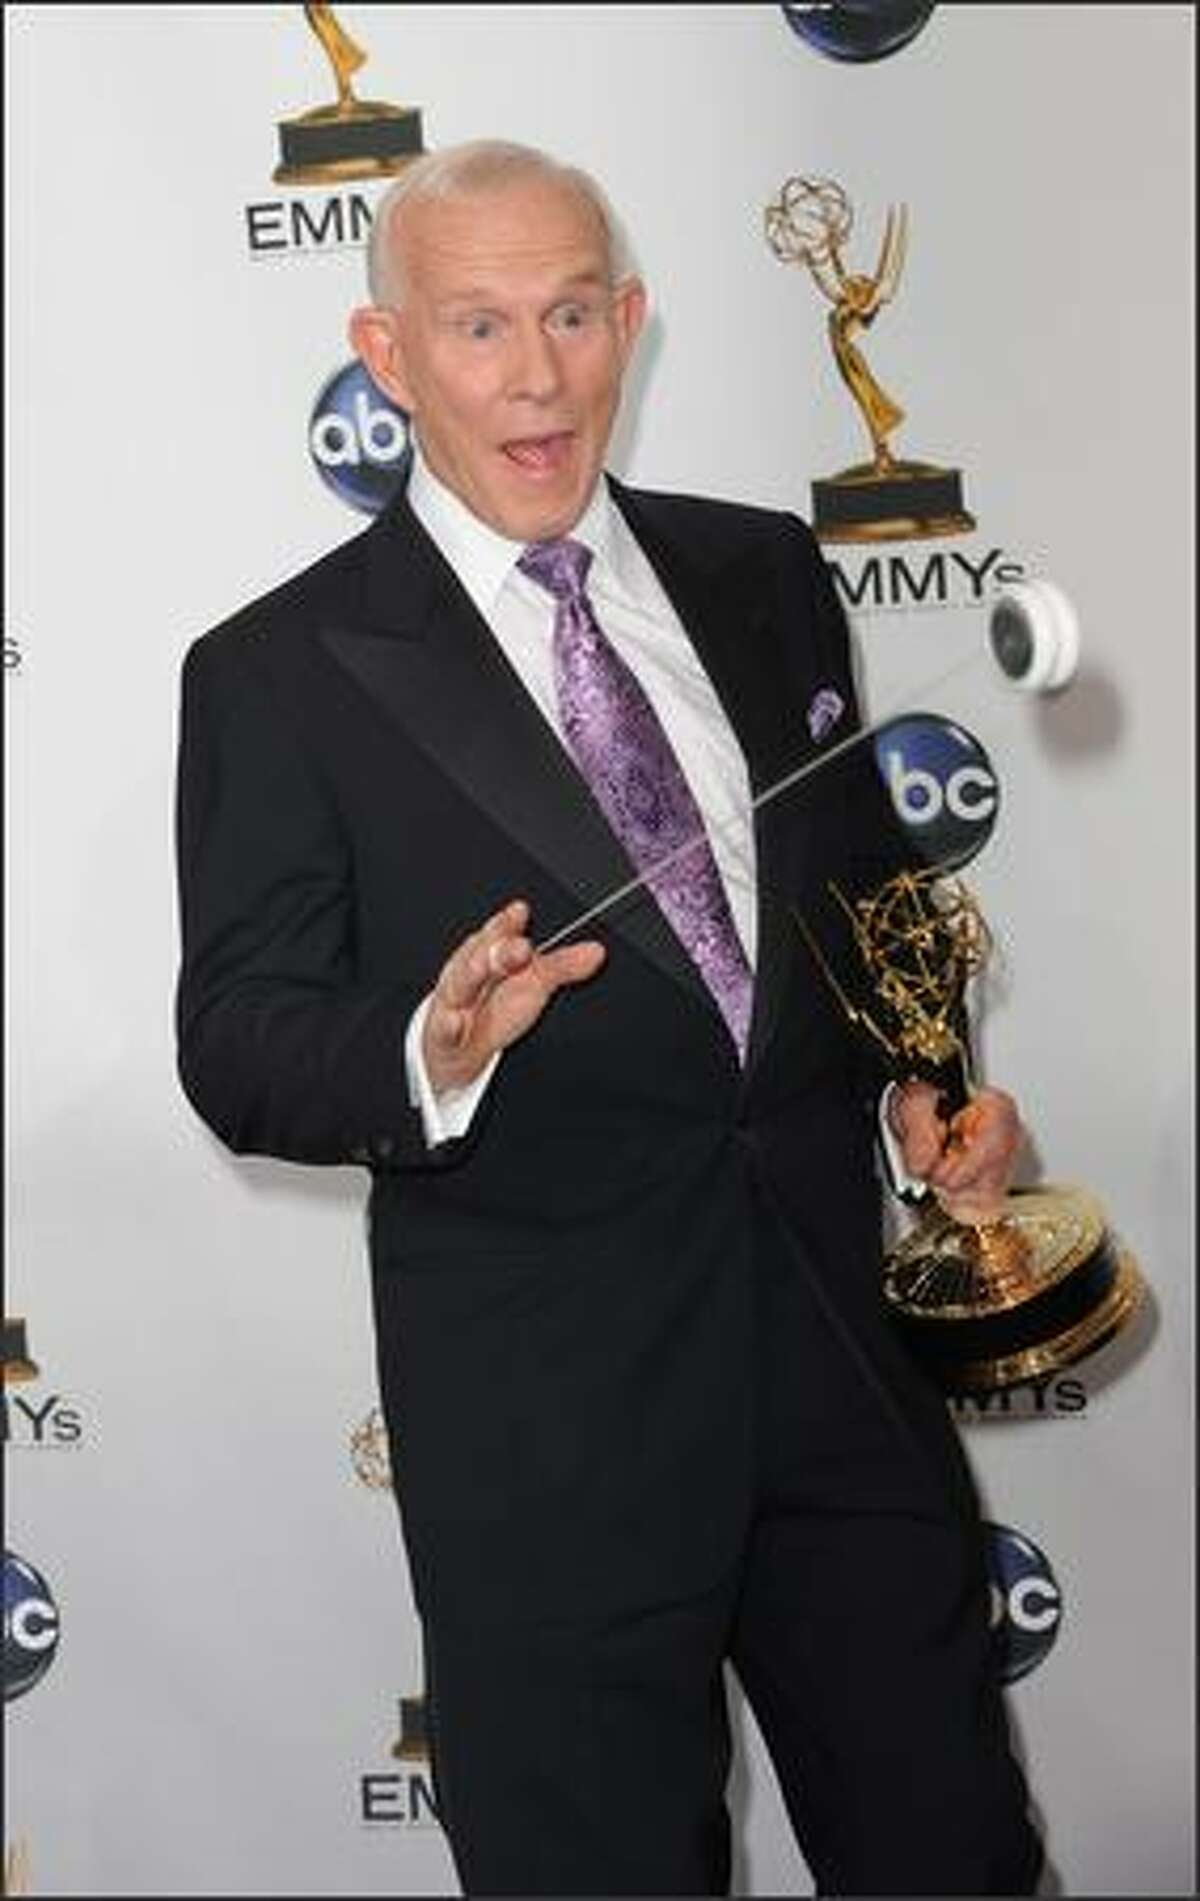 Comedian Tommy Smothers shows off his yo-yo skills in the press room at the 60th Primetime Emmy Awards at the Noika Theatre in Los Angeles on September 21, 2008. AFP PHOTO Robyn BECK